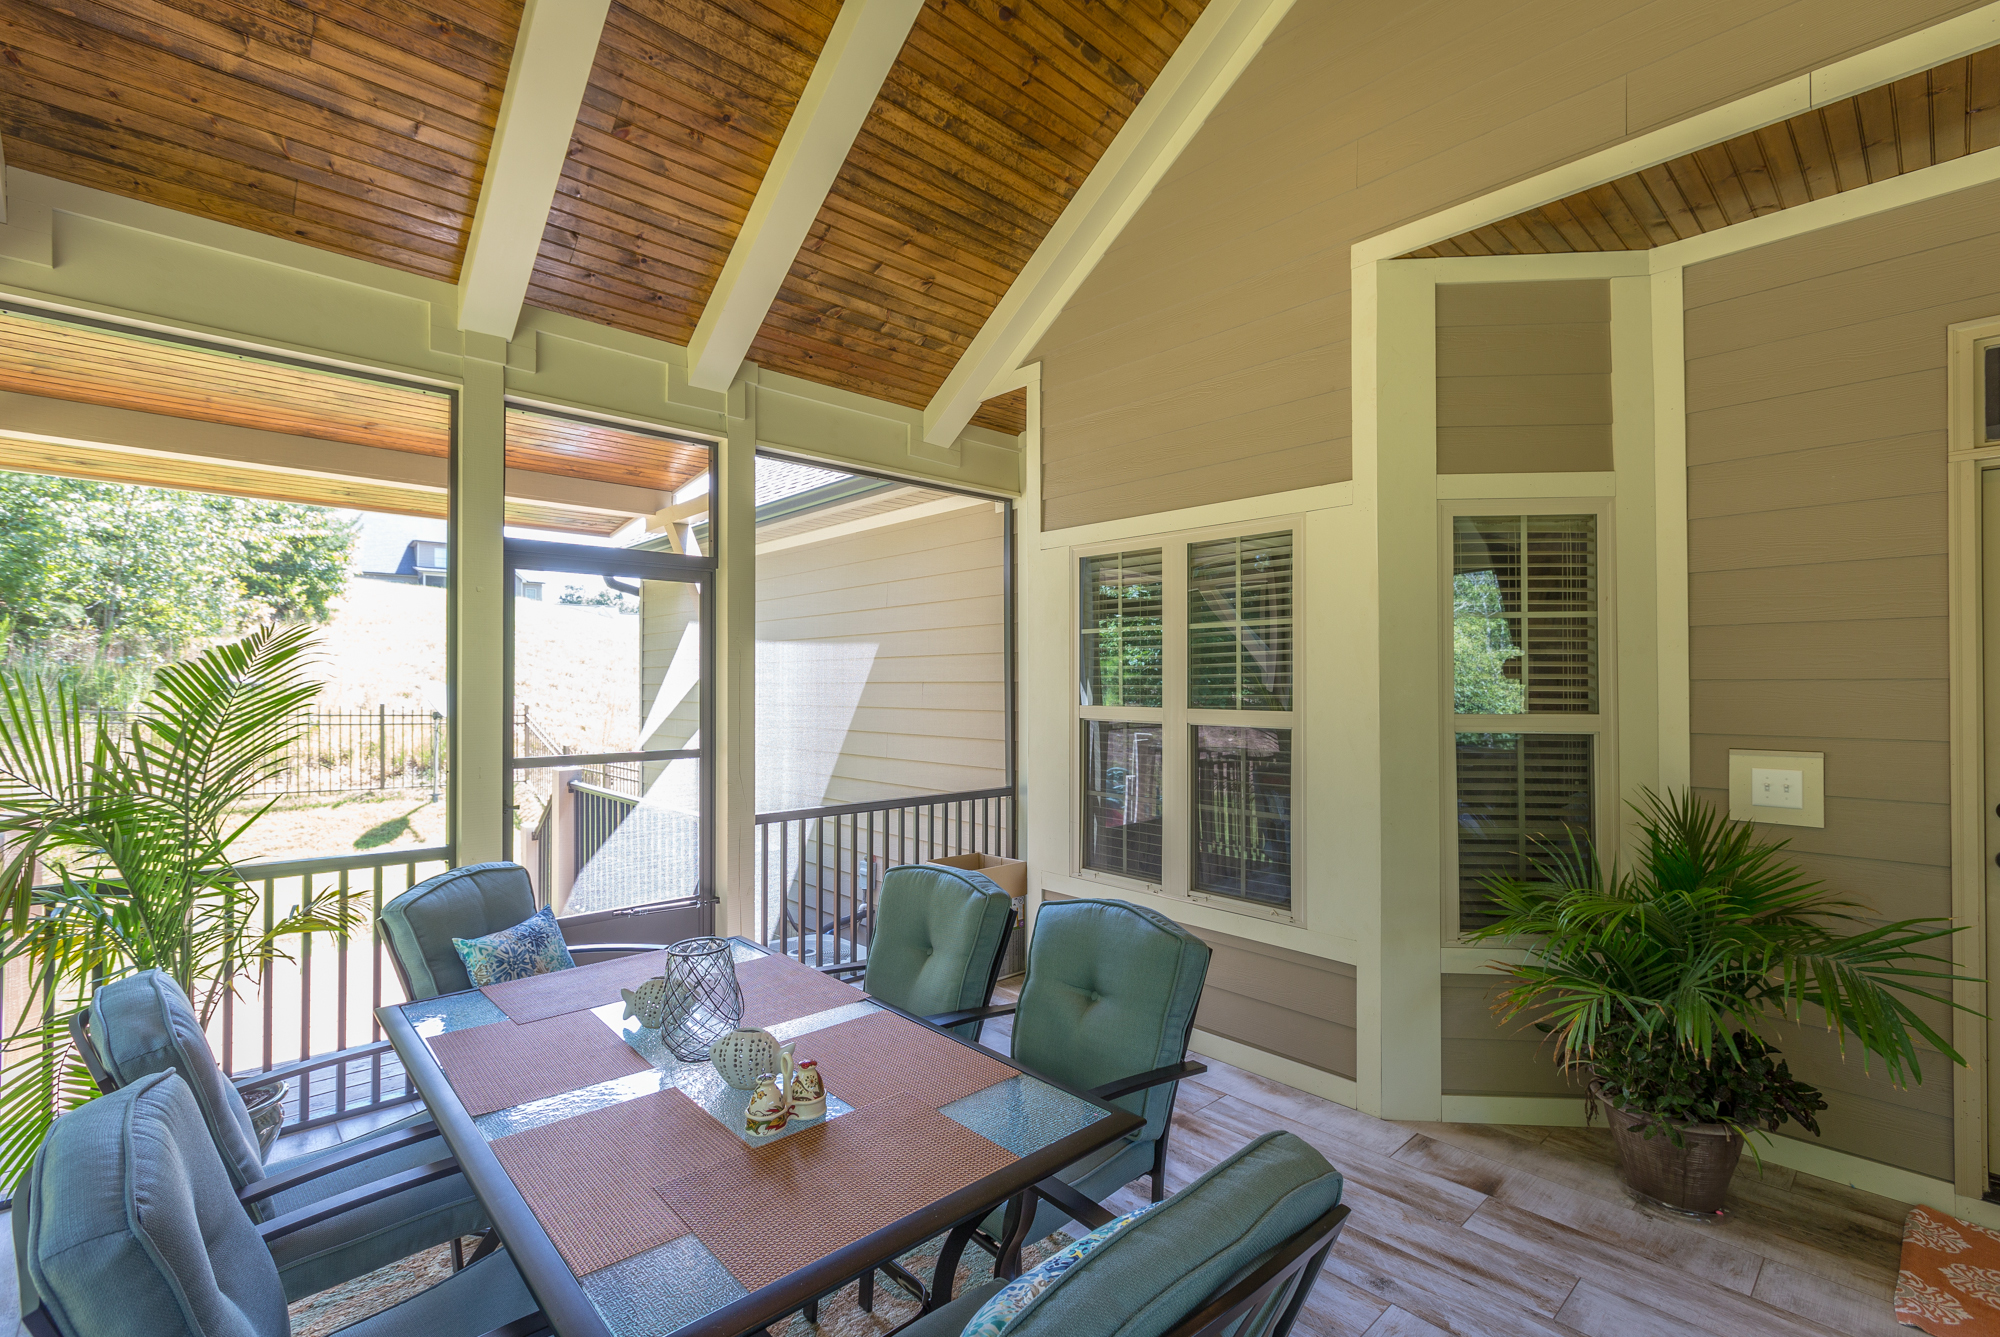 Interior Exterior Painting Services Chattanooga Tn